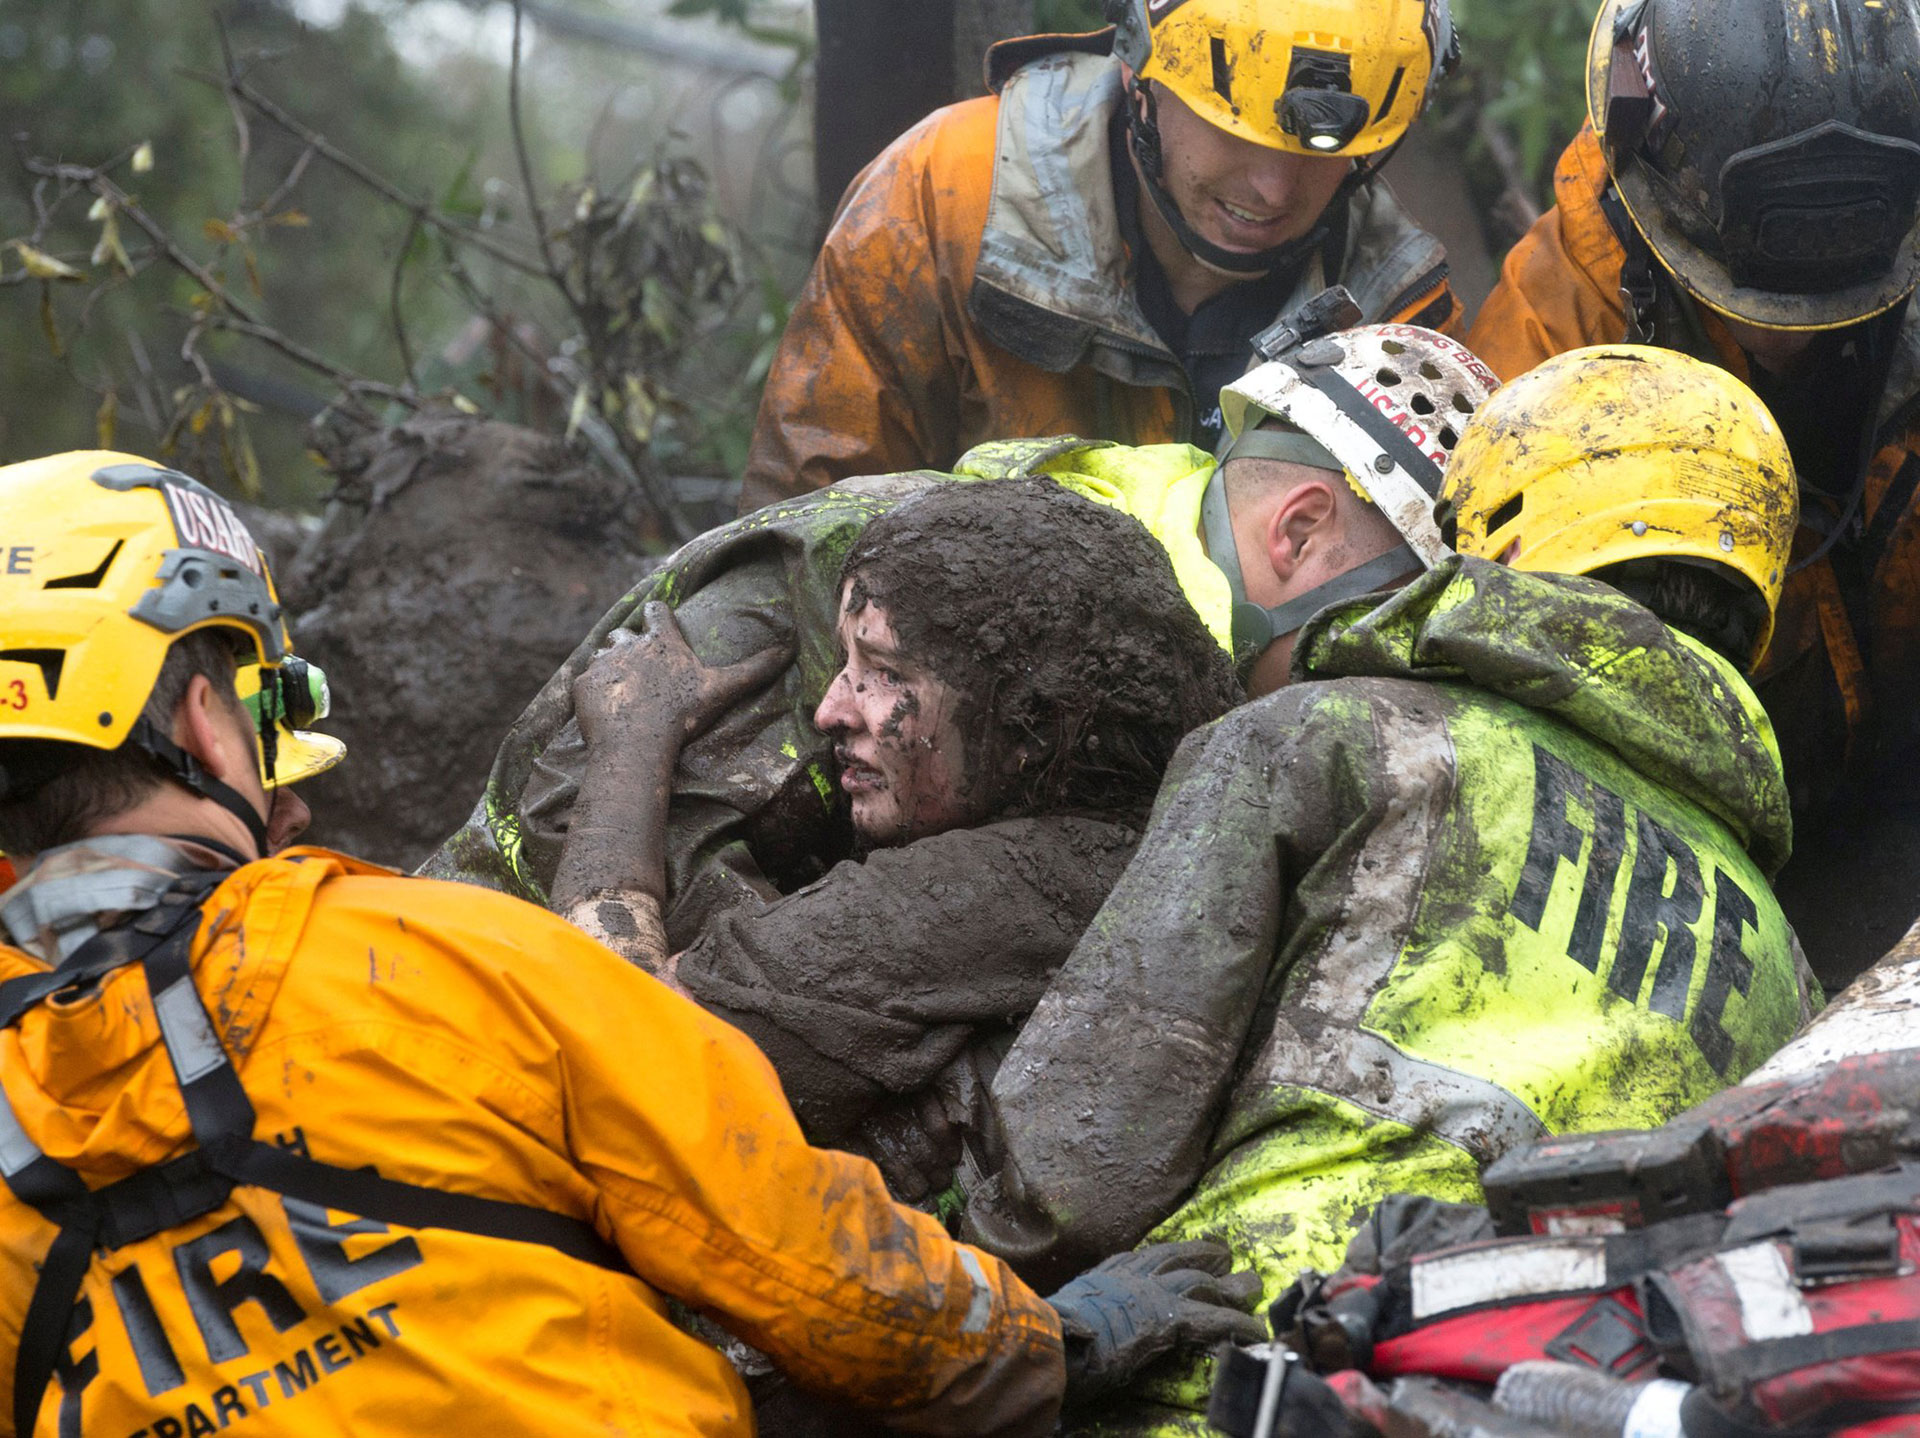 Firefighters rescue Lauren Cantin, 14, after she was trapped inside a home destroyed by a mudslide.